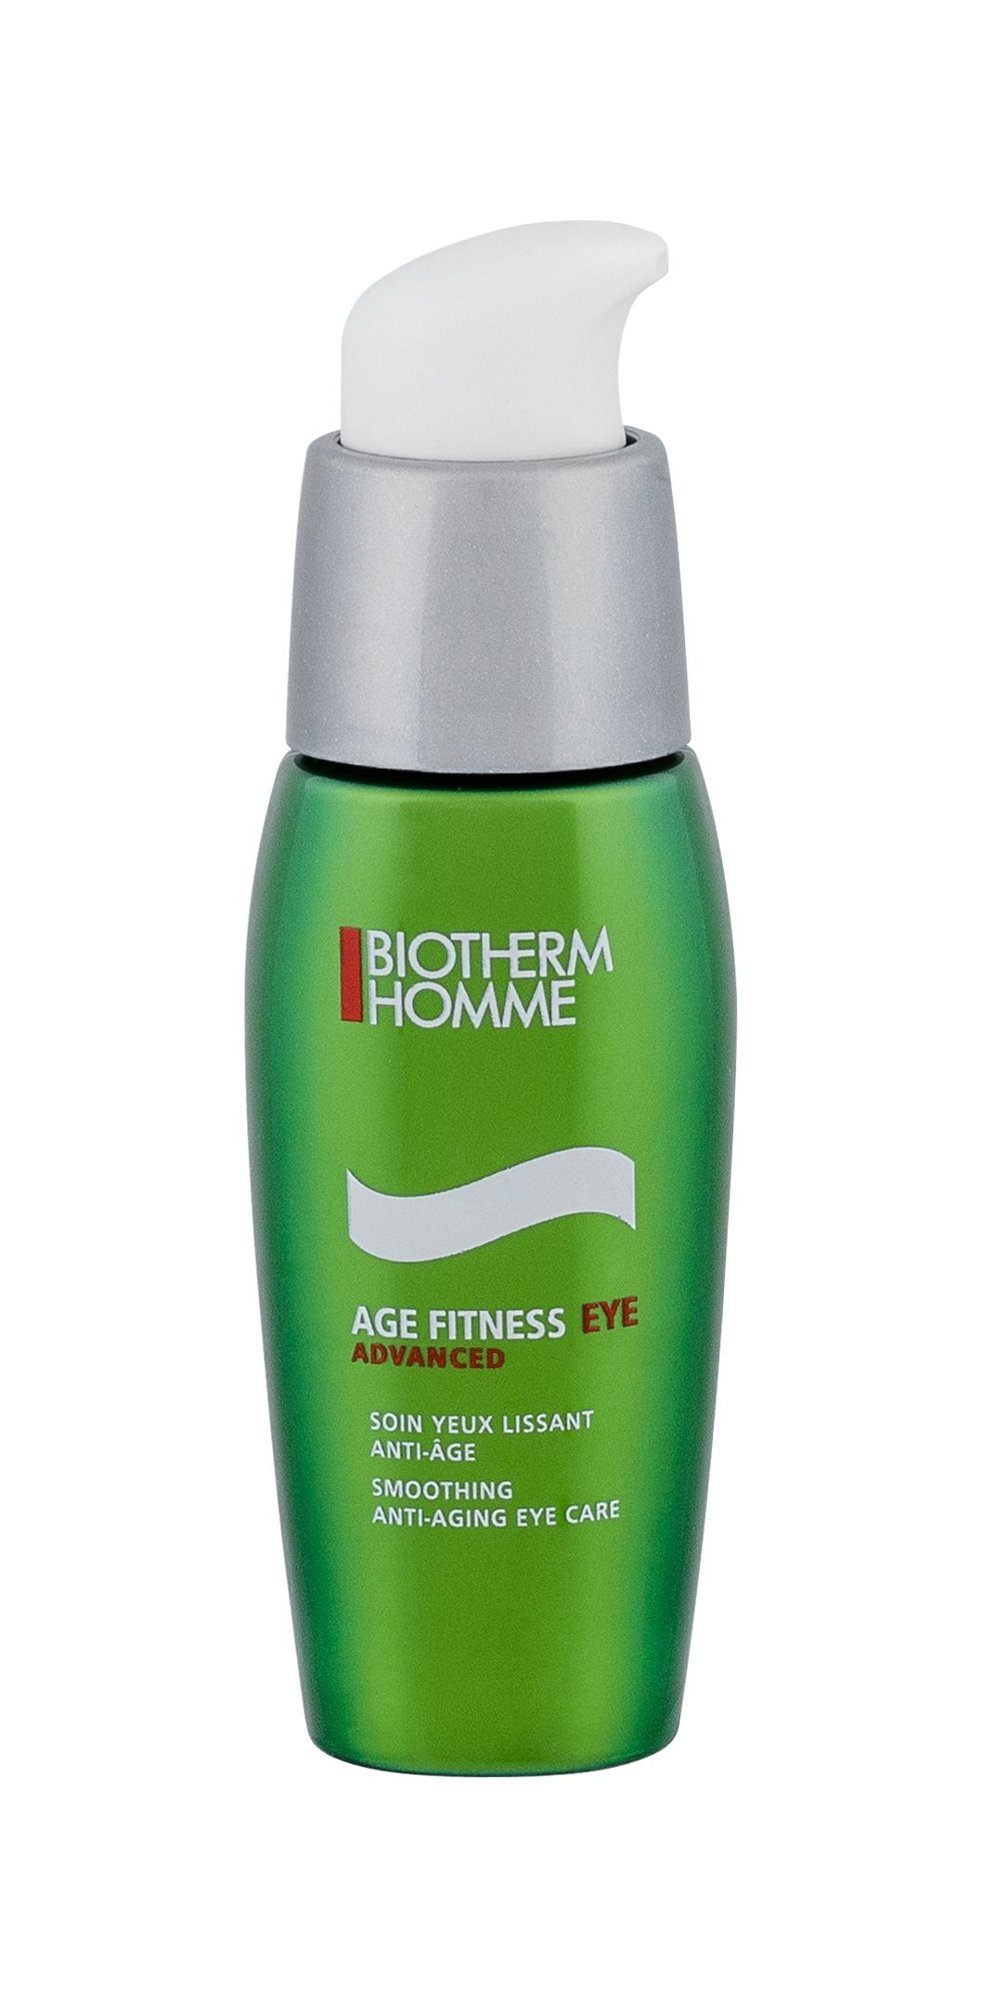 Biotherm Homme Age Fitness Cosmetic 15ml